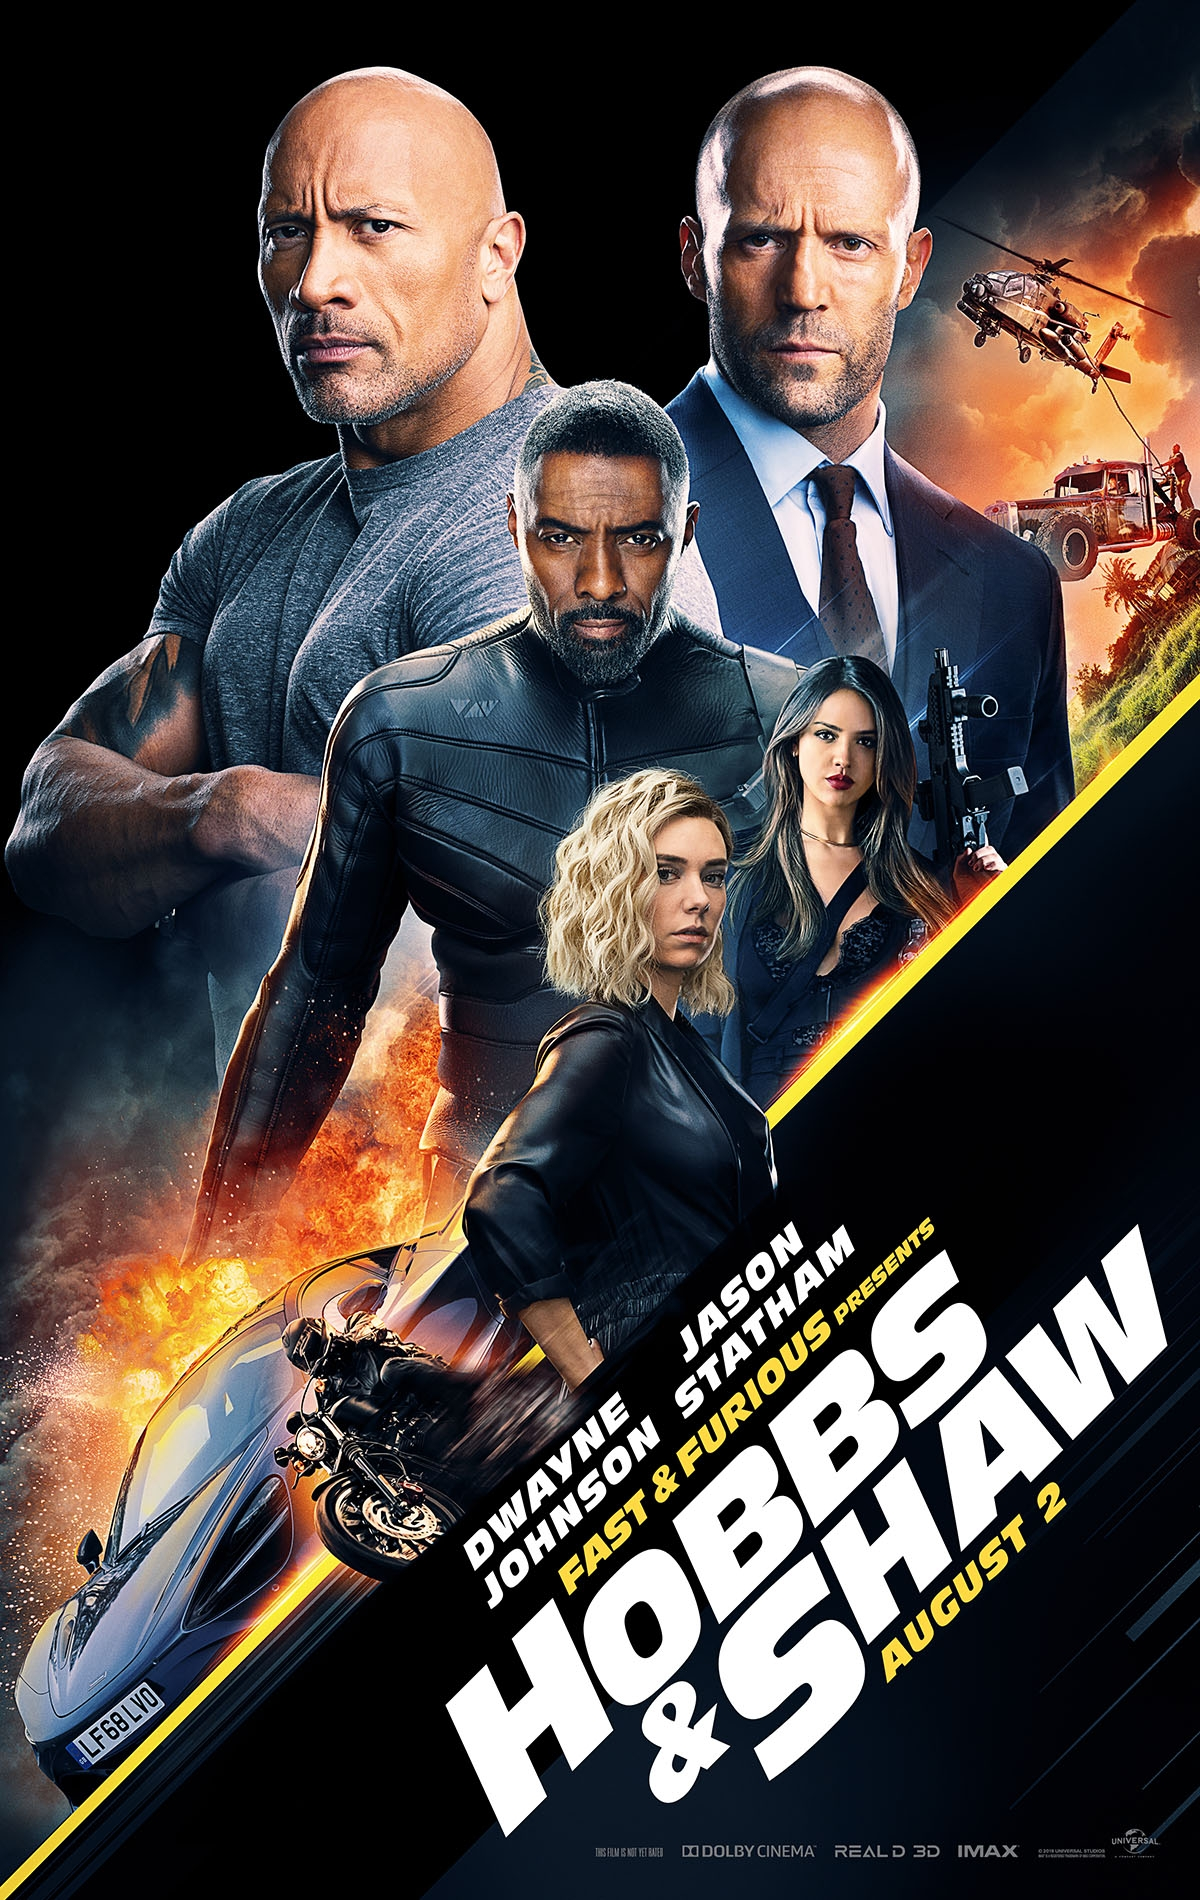 Fast & Furious Presents: Hobbs & Shaw - Poster 2